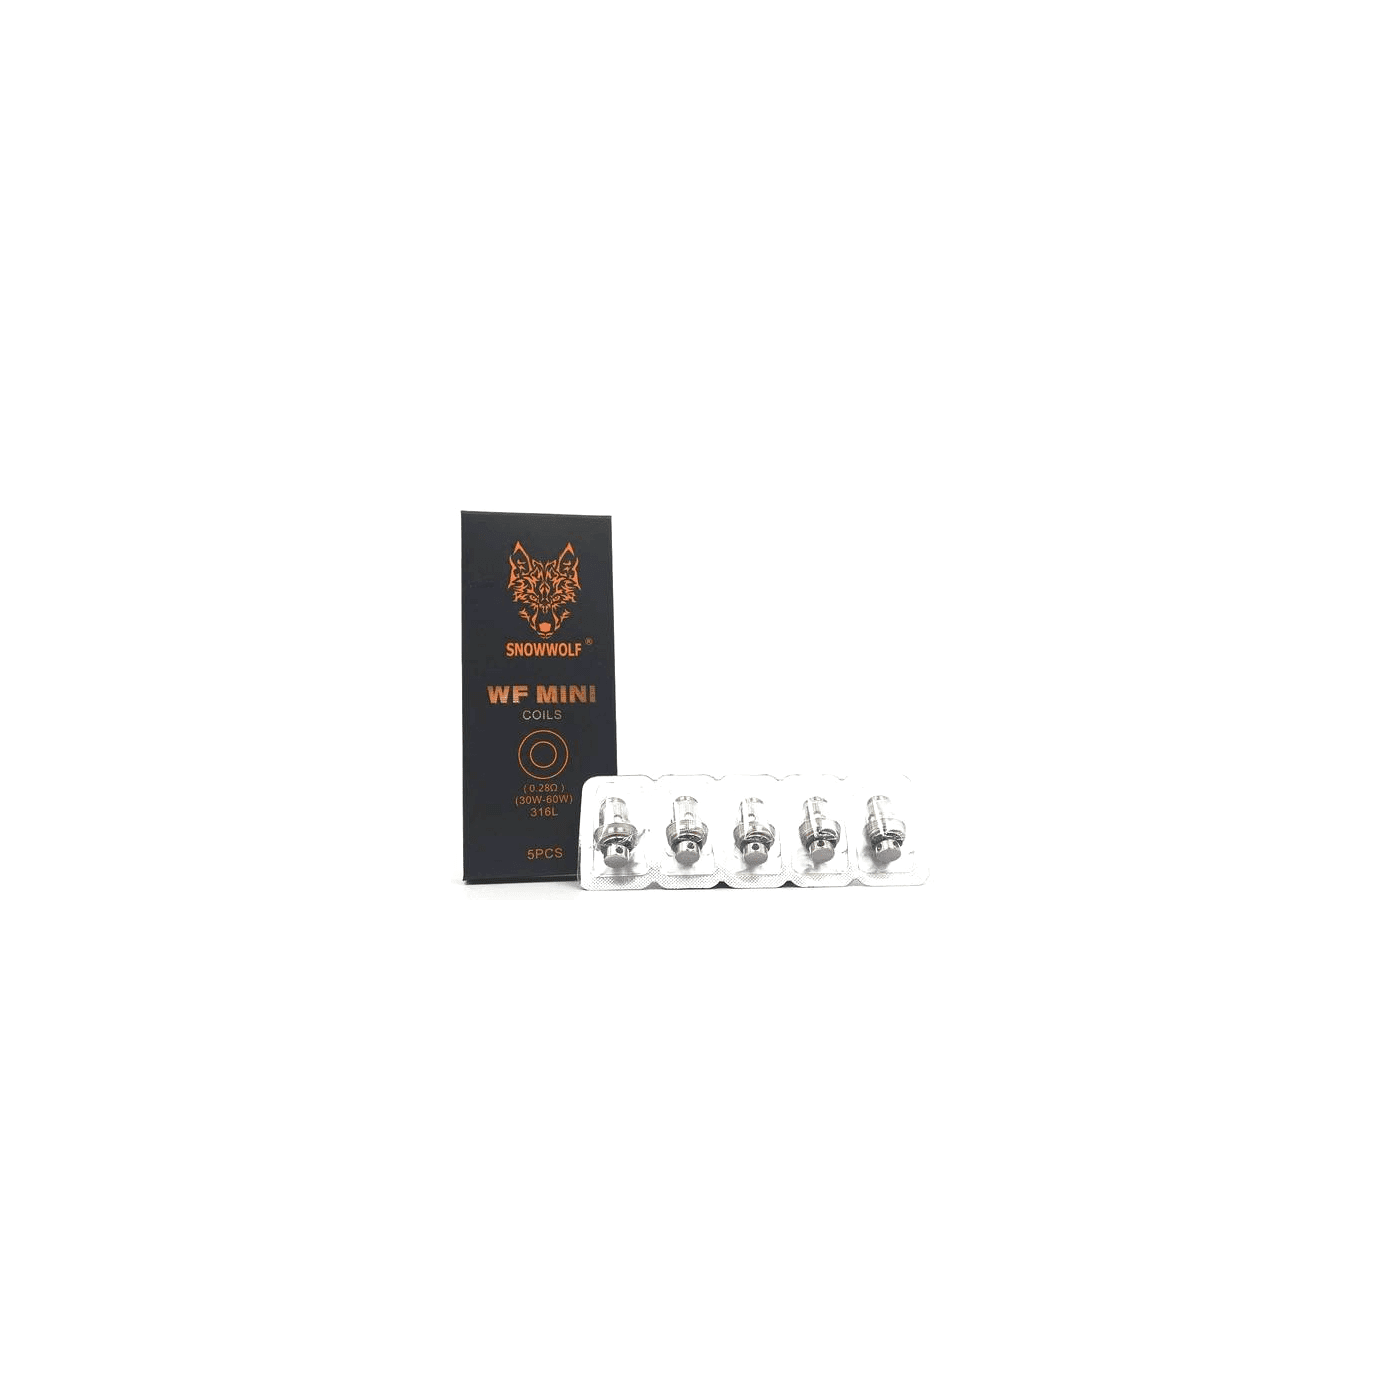 Snowwolf WF Mini Replacement Coil - 5 pack - 0.28 ohm